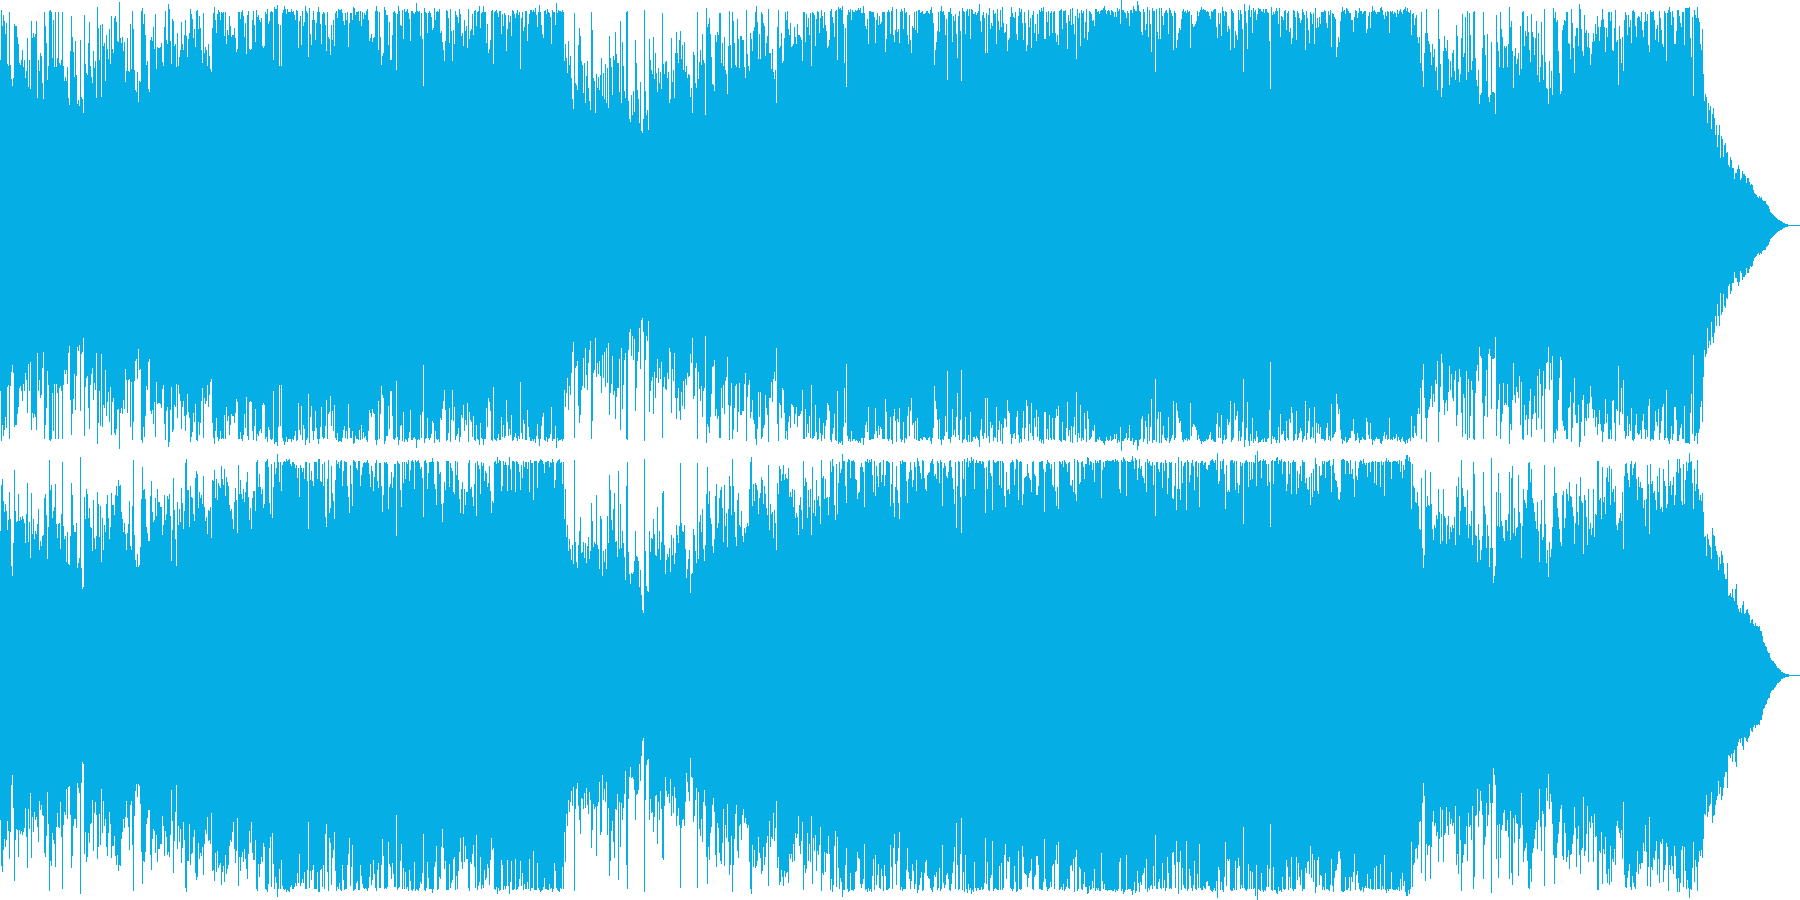 Gentle female vocals and Western pop music's reproduced waveform